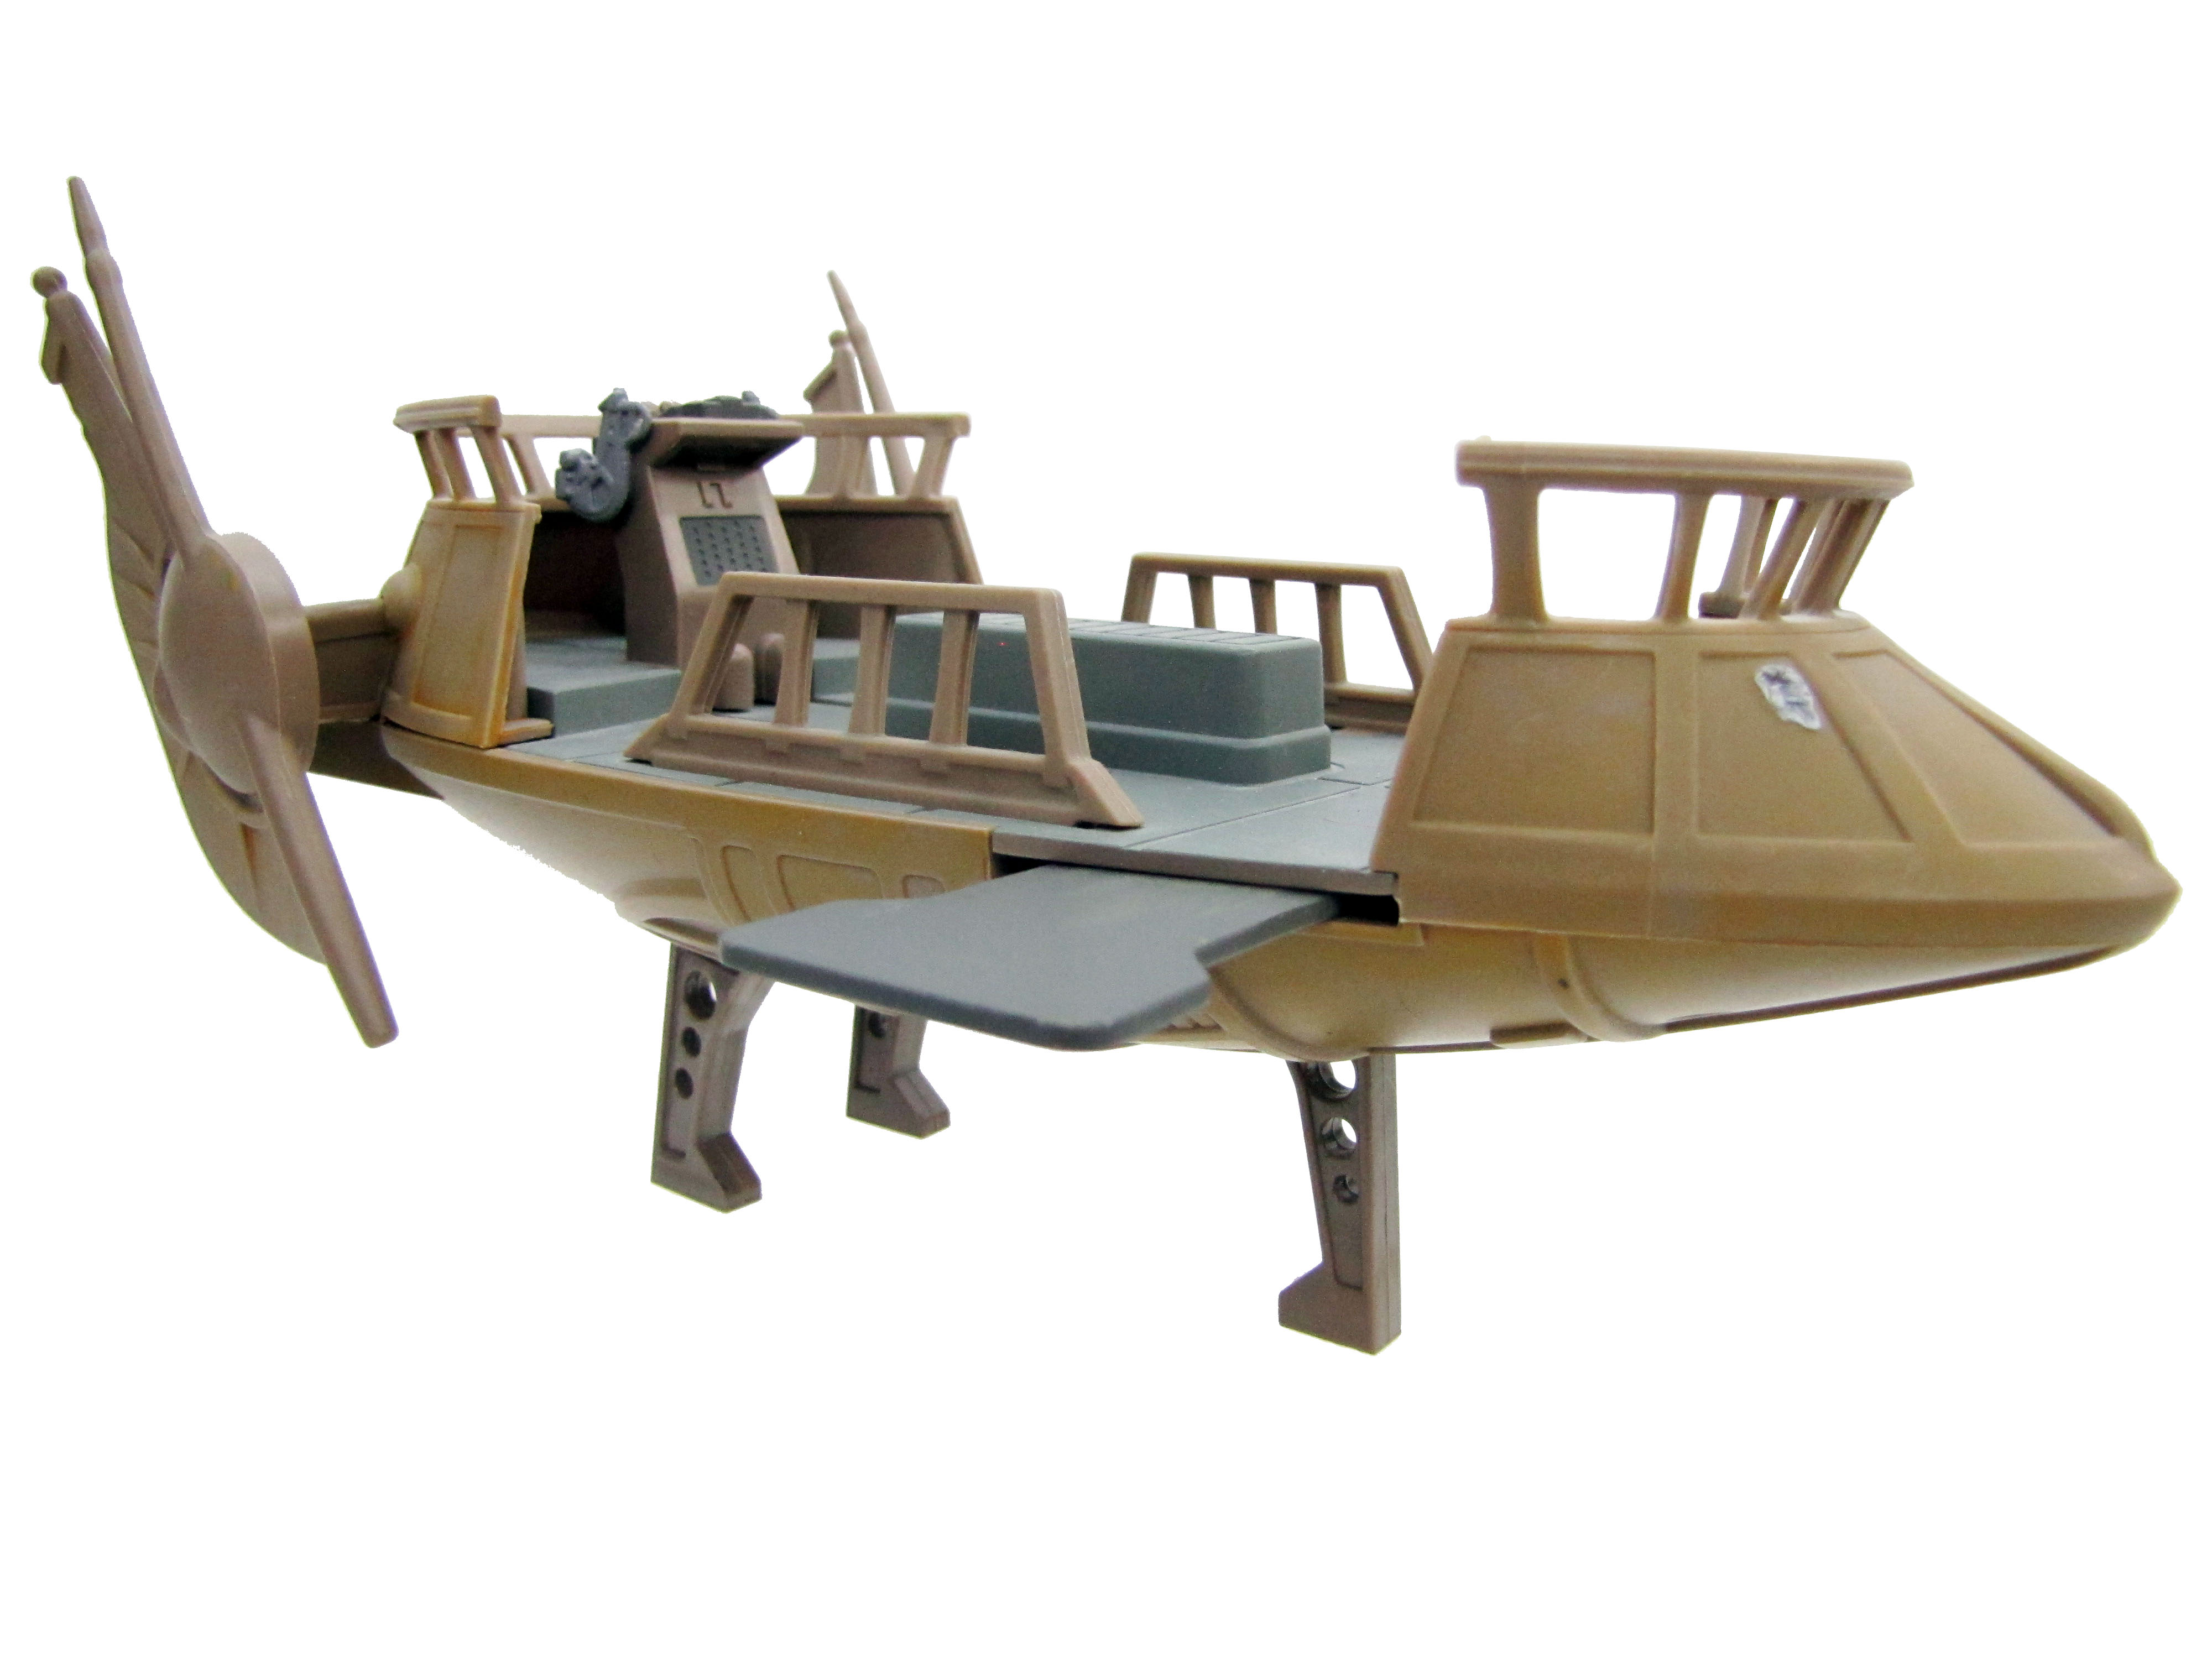 Star Wars Galactic Heroes JABBA'S SKIFF THE PIT OF CARKOON